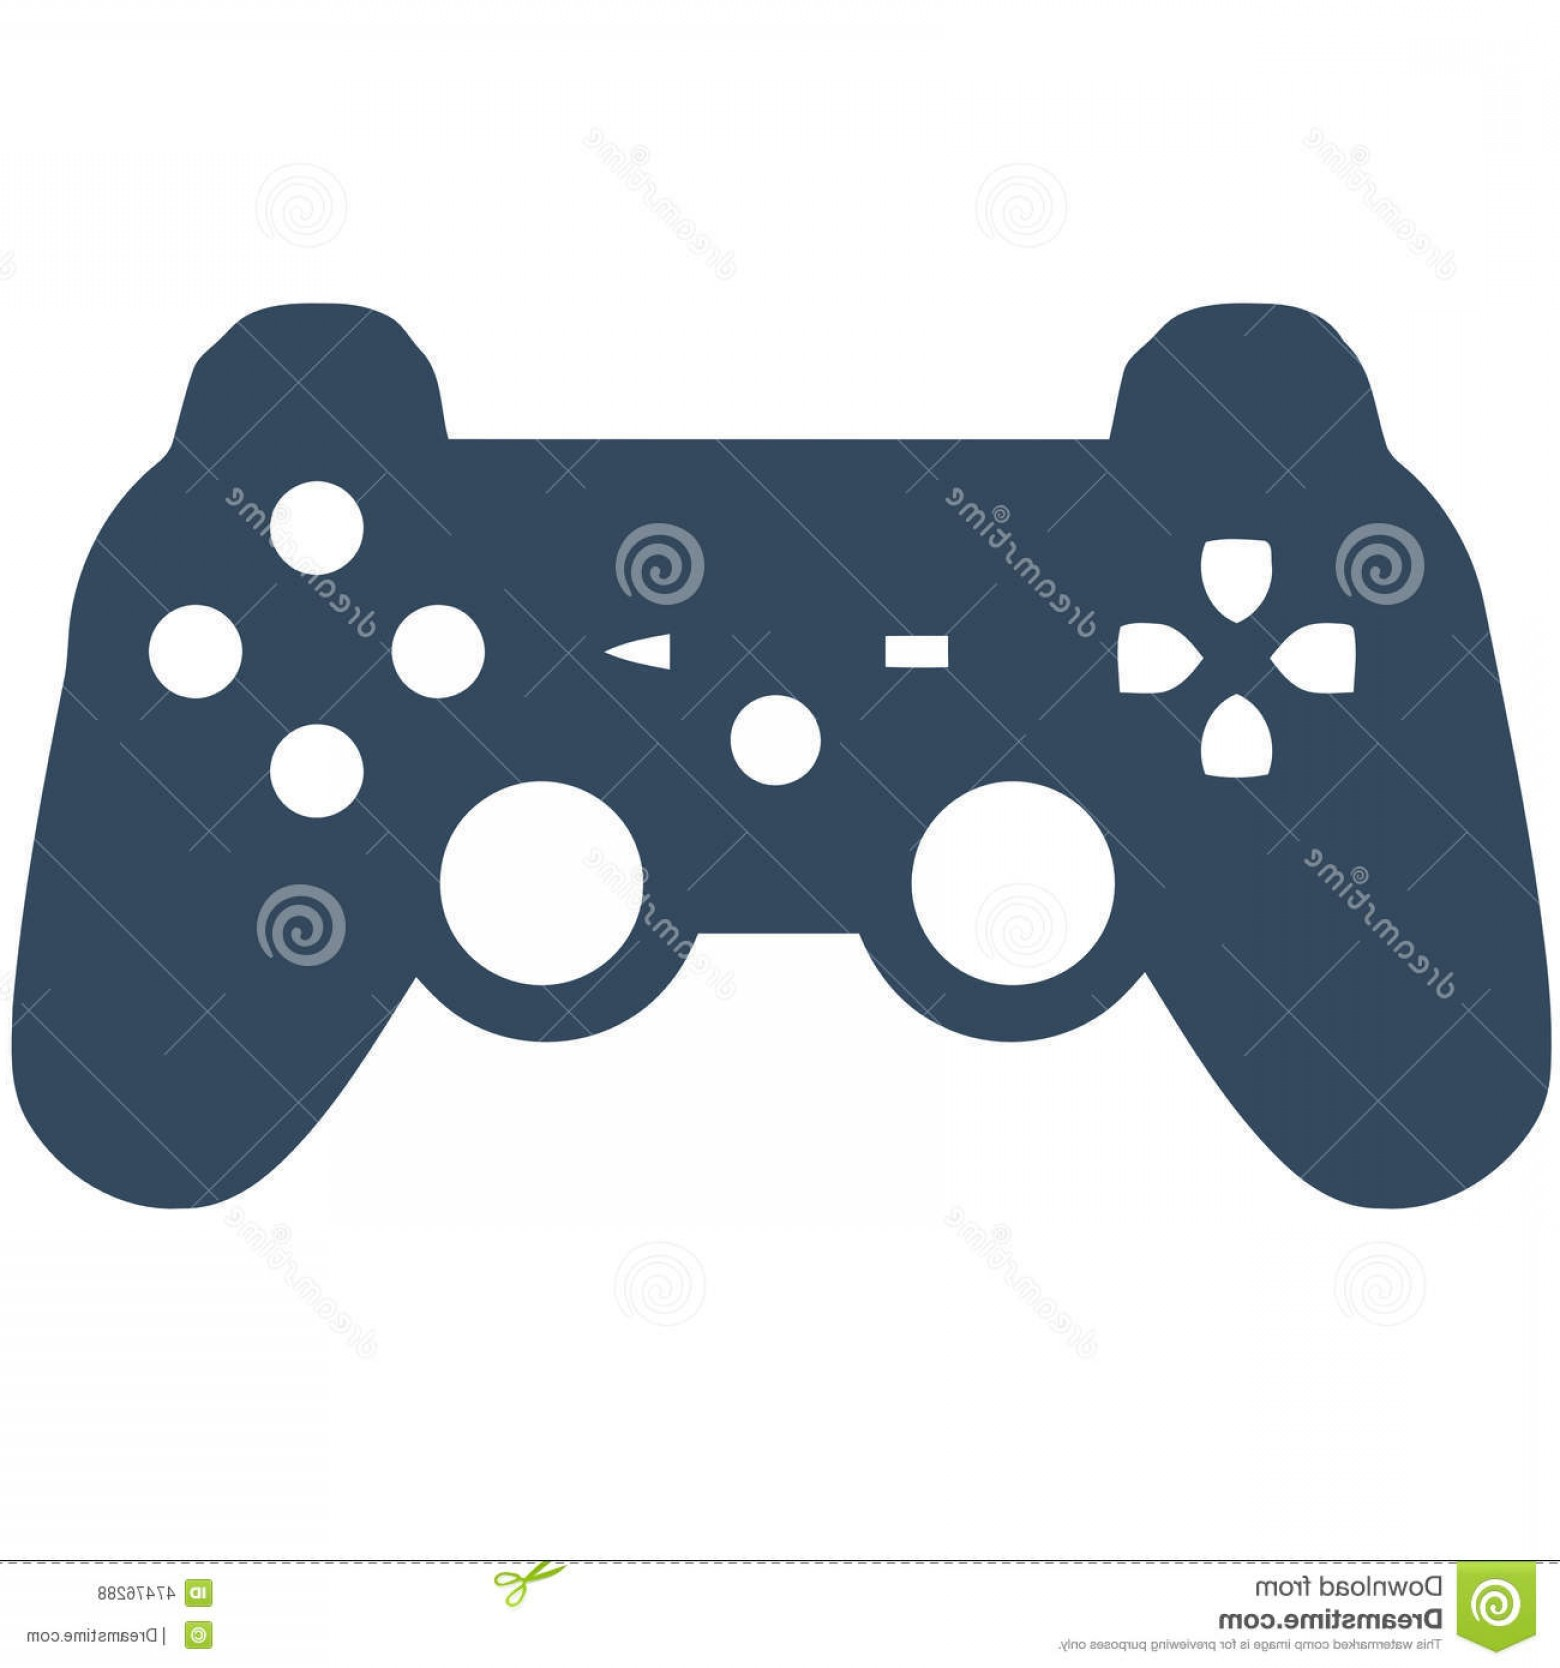 Xbox Game Controller Vector: Stock Illustration Genesis Megadrive Game Controller Vector Silhouette Ideal Webpage Icons Font Image